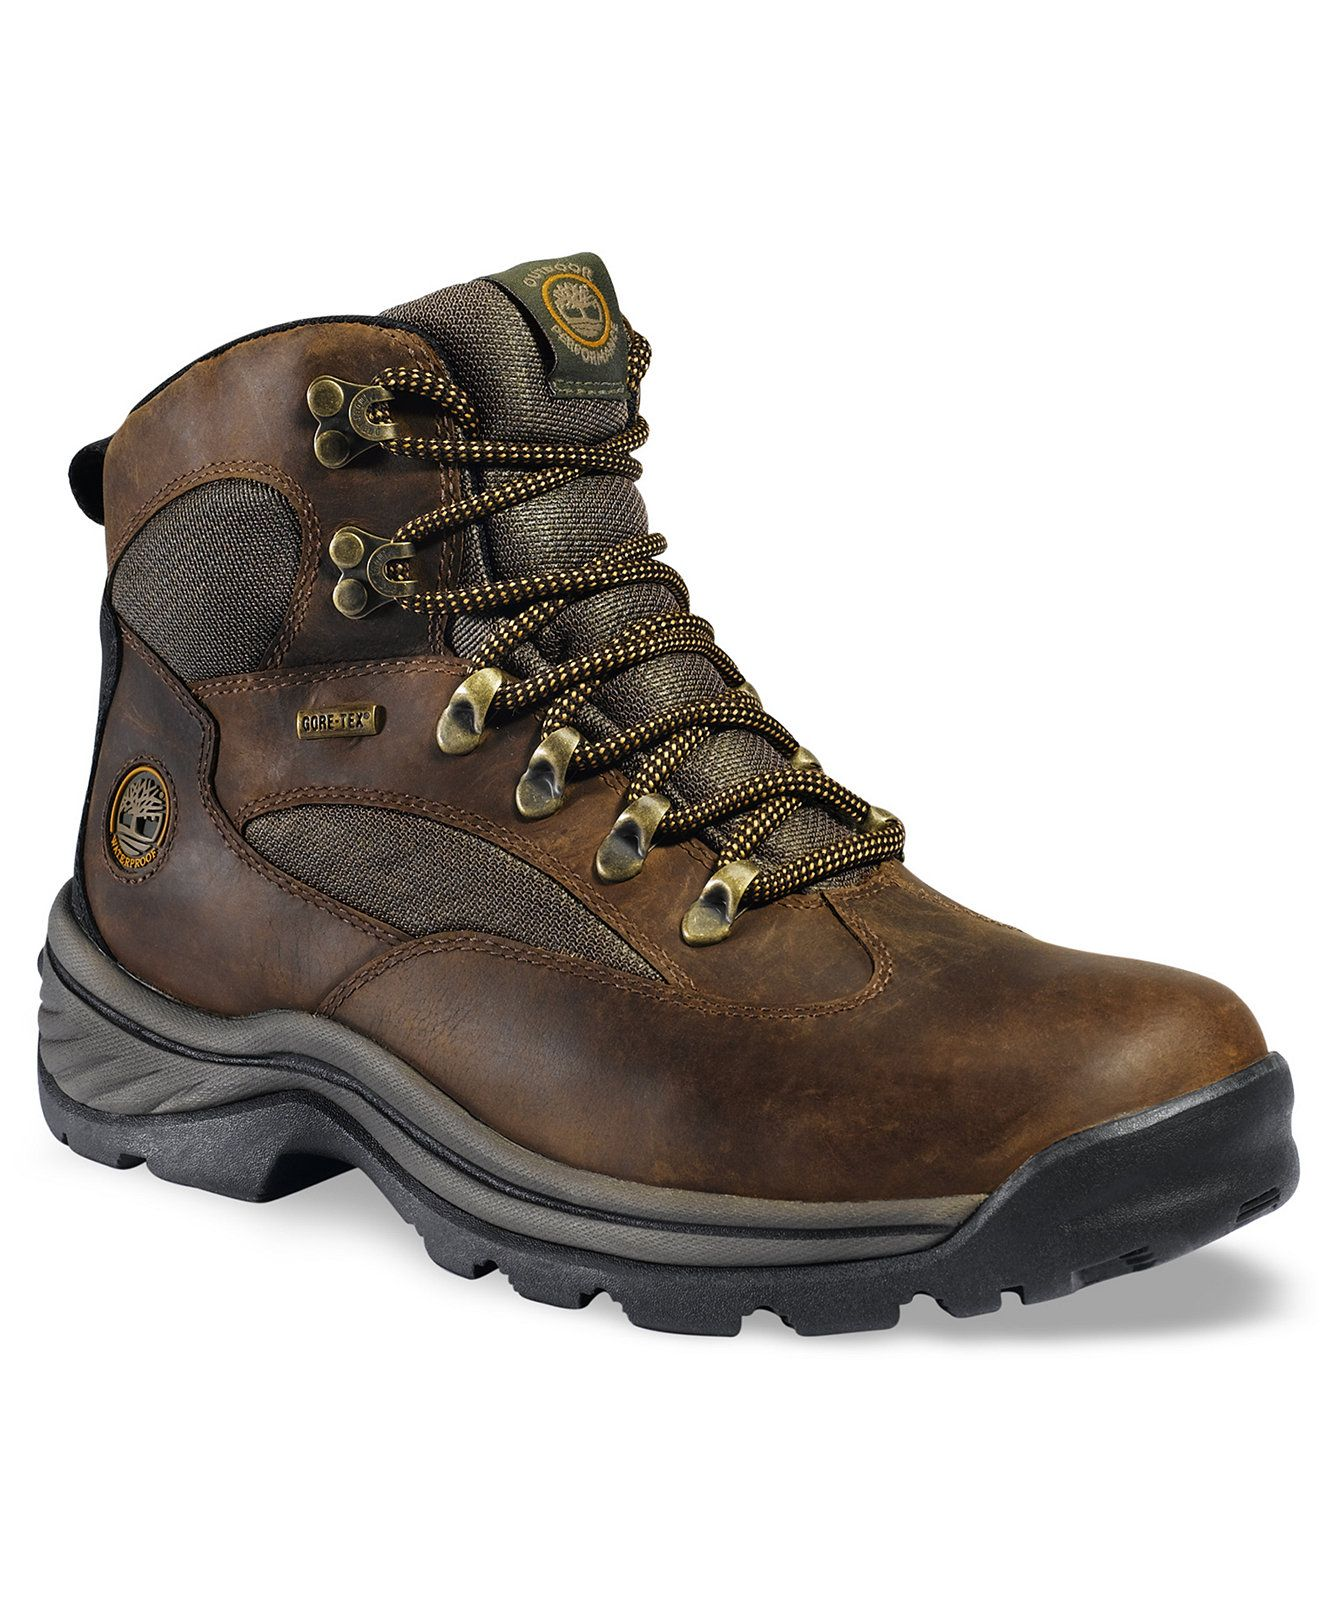 Best Shoes For Extreme Work Walking